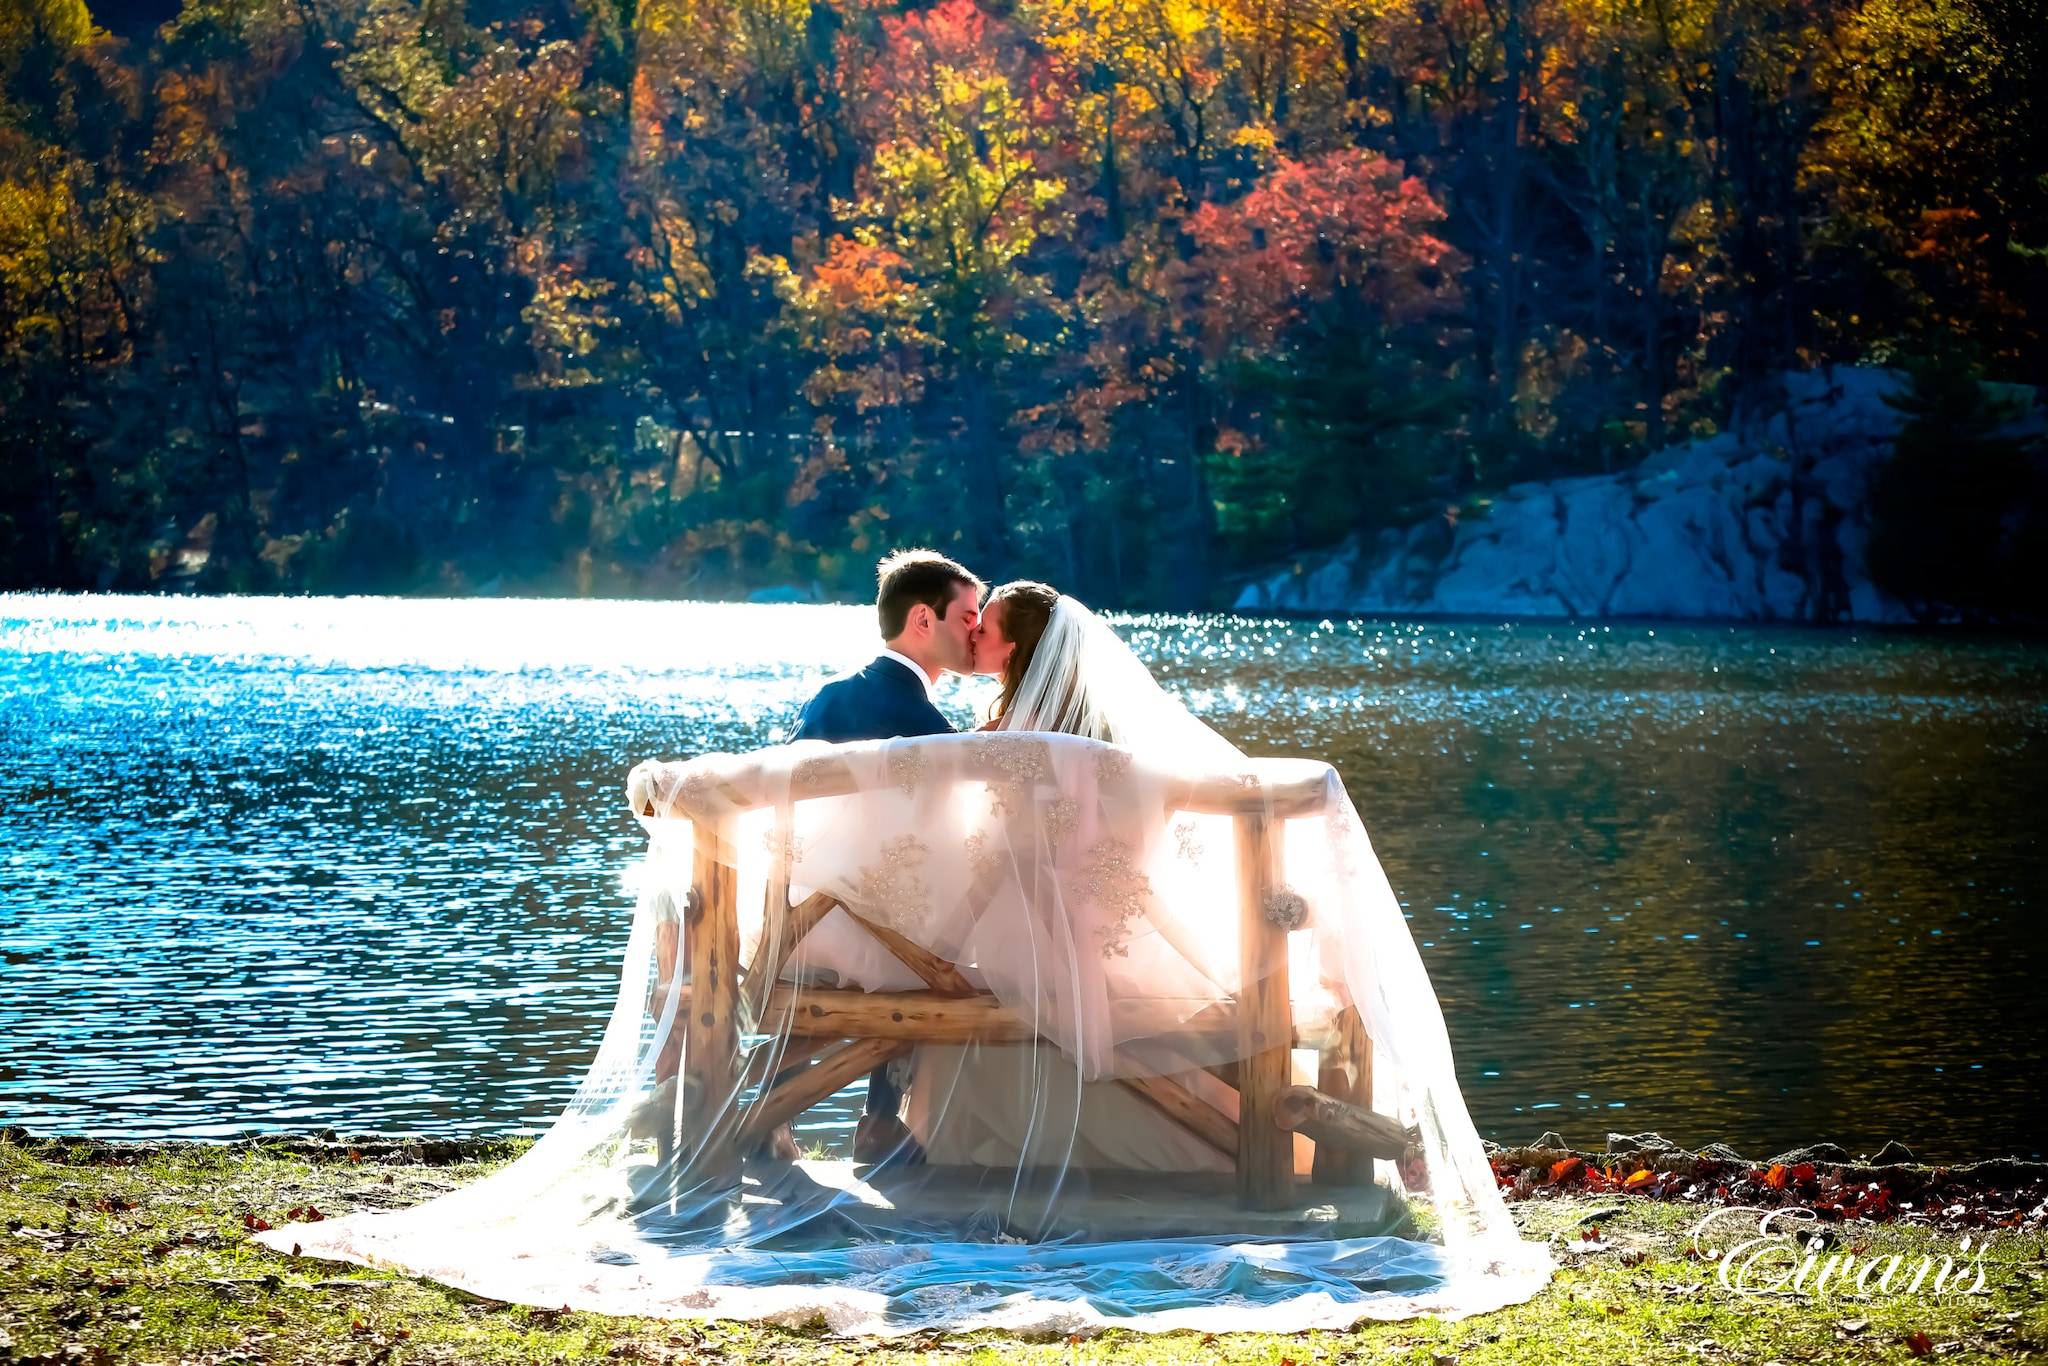 man and woman sitting on white hammock near body of water during daytime